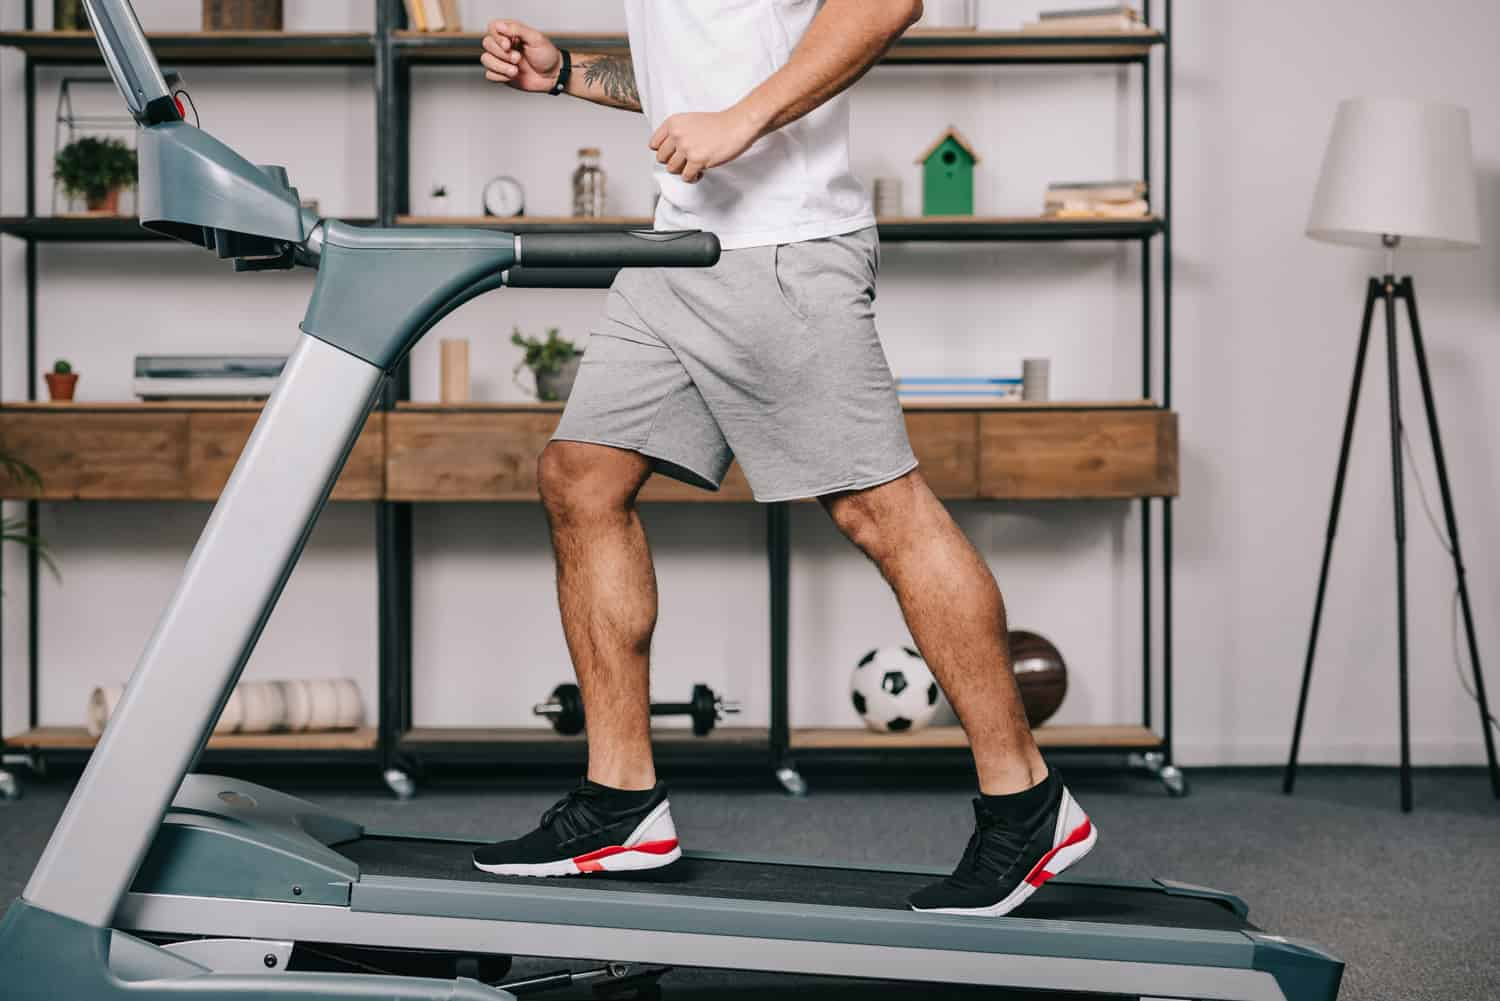 cropped view of muscular sportsman running on treadmill